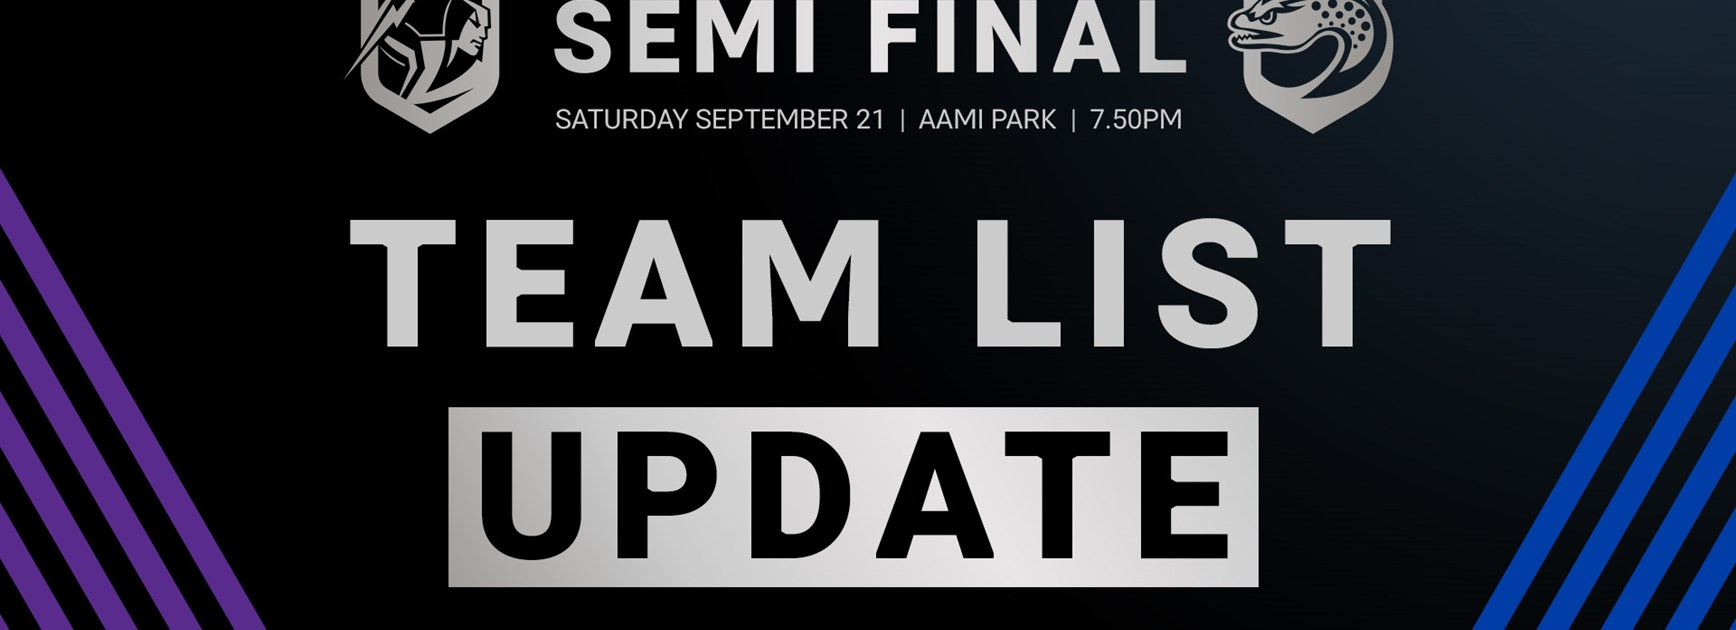 Storm v Eels, Semi Final – Team List Update